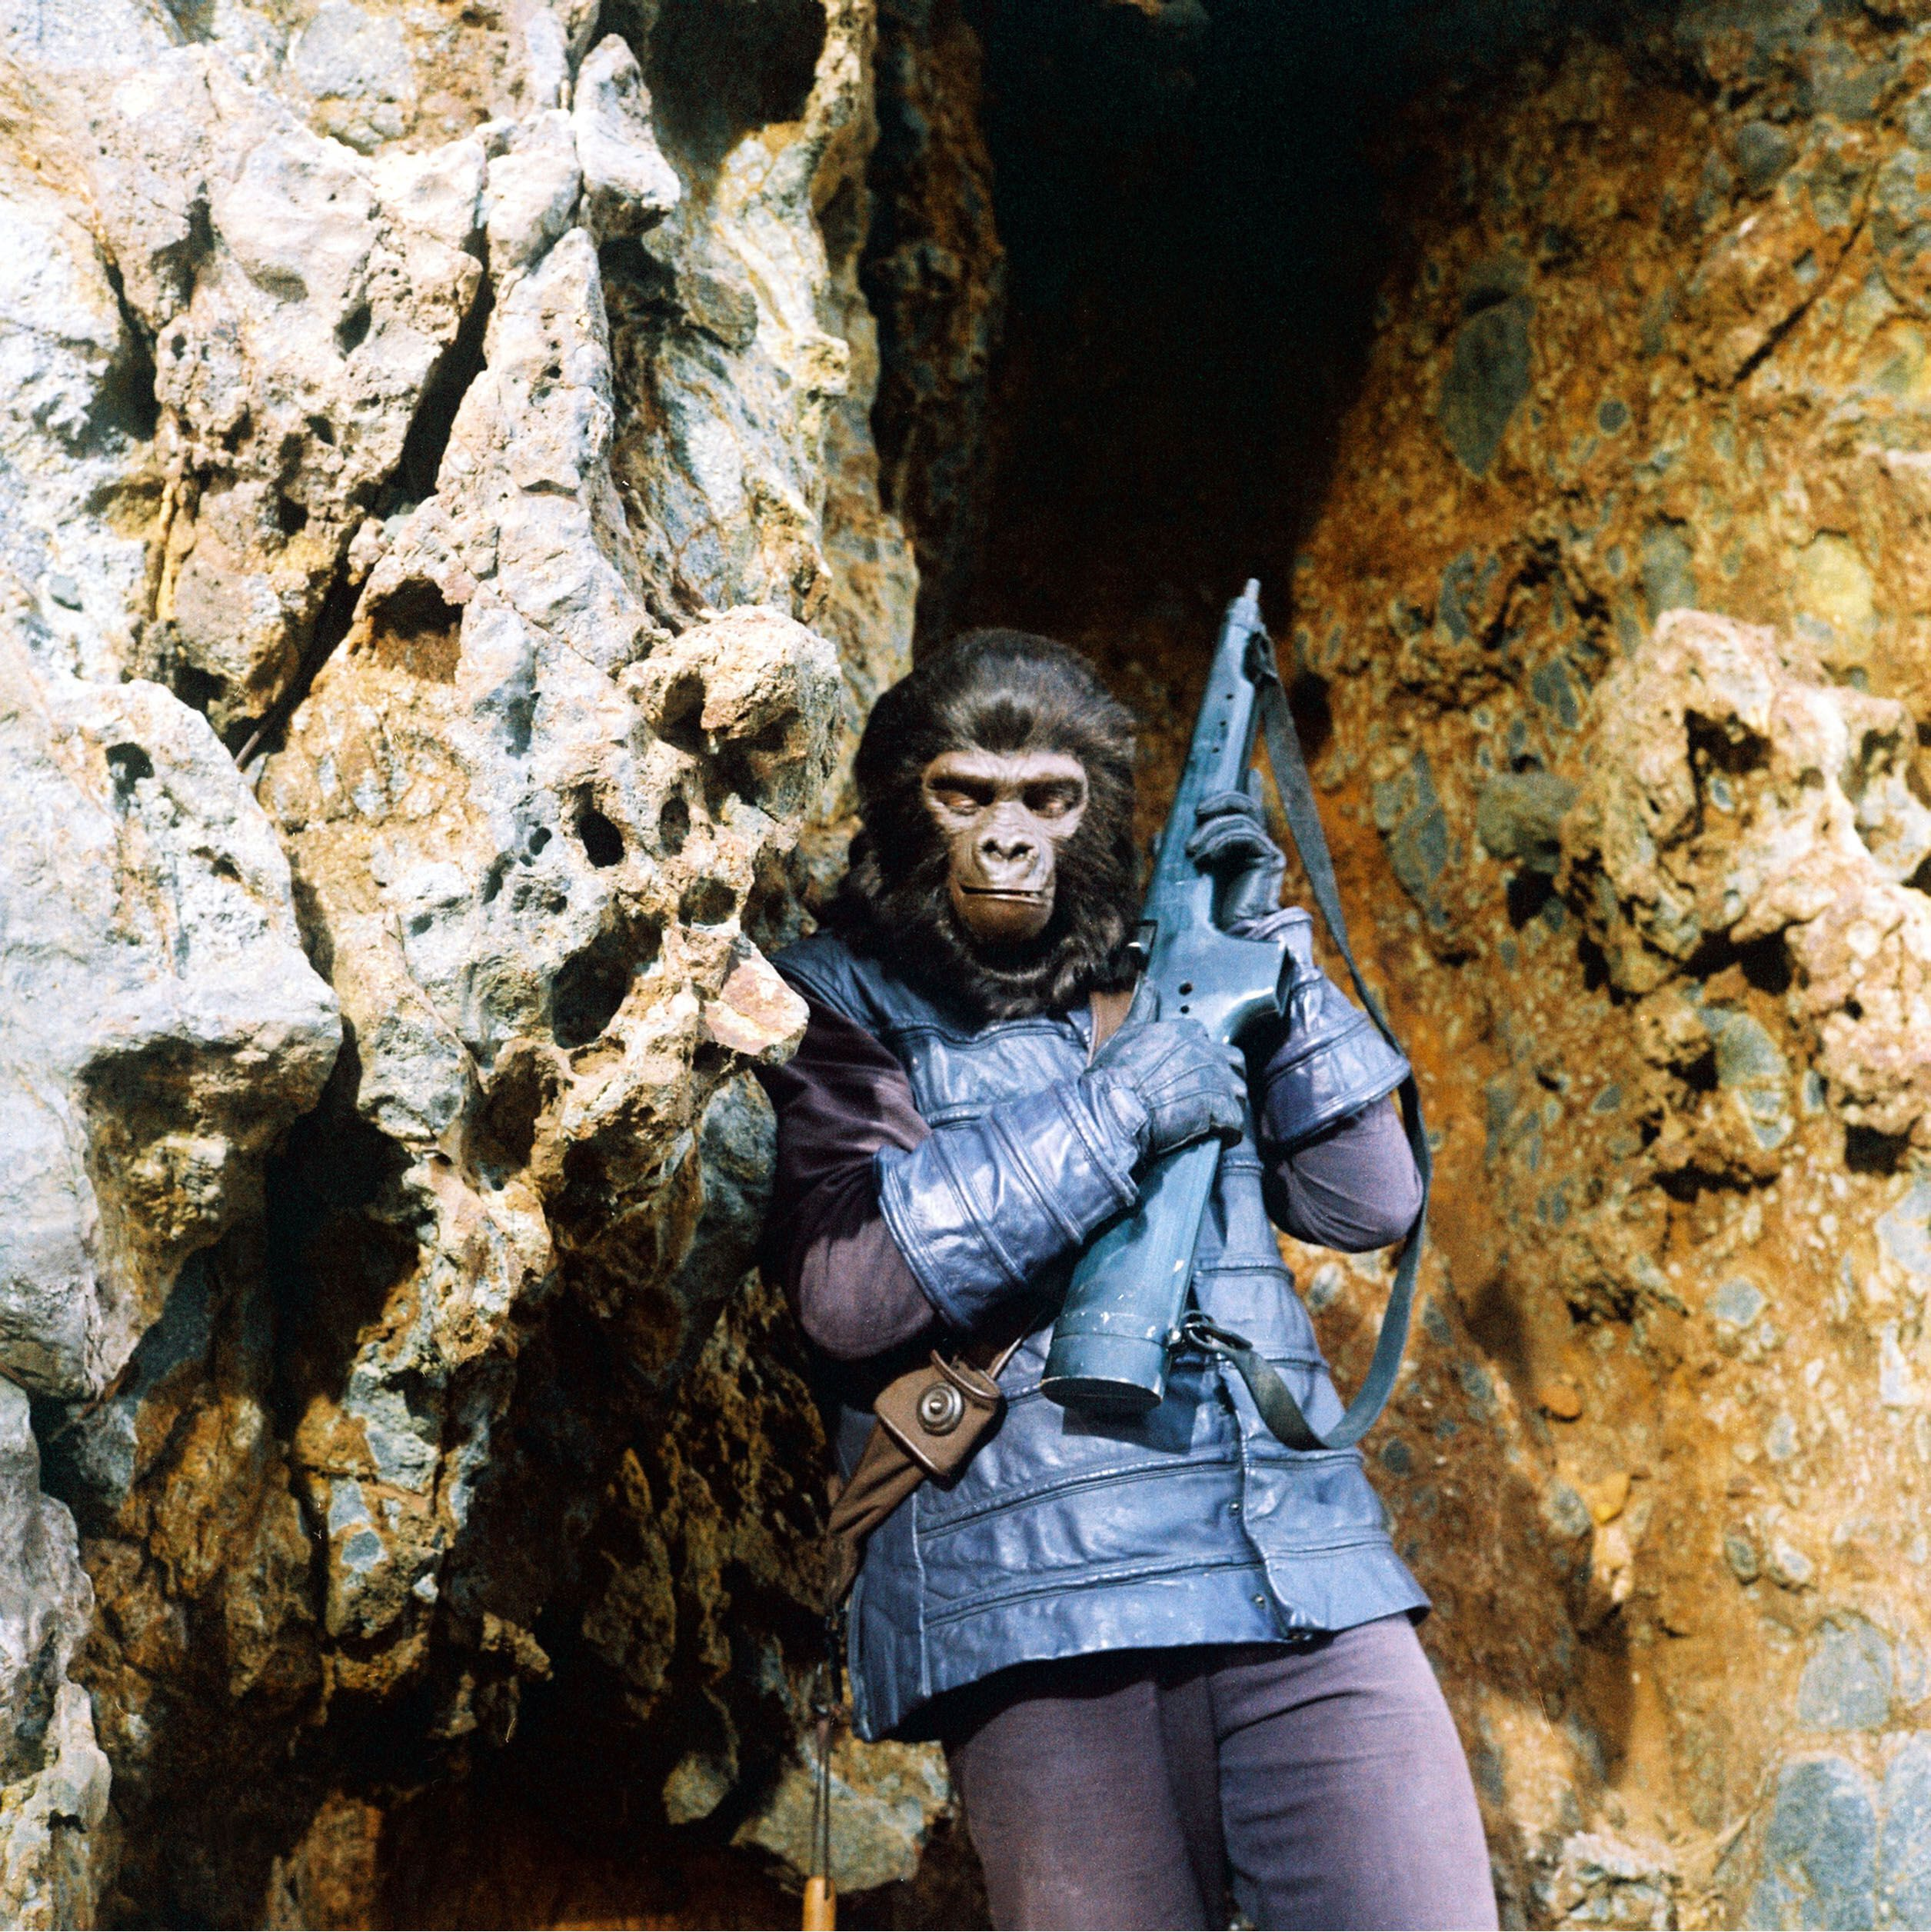 An image from Planet of the Apes